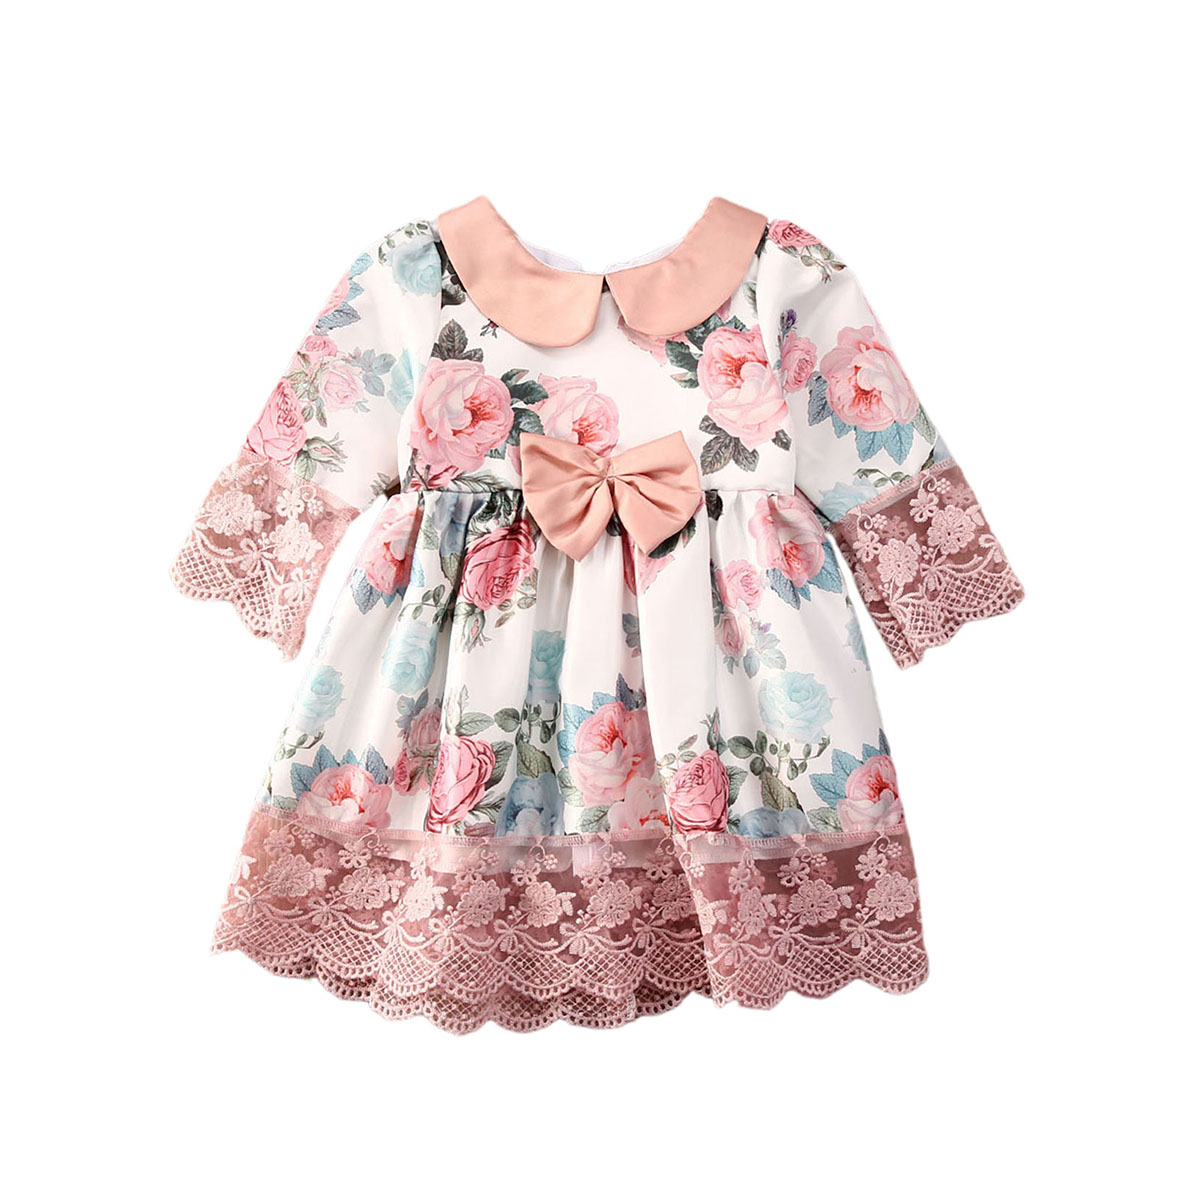 2020 New Pudcoco Toddler Kid Baby Girl Princess Dress Ruffle Flowers Print A-Line Dress Party Summer Clothes Outfit 0-5Y